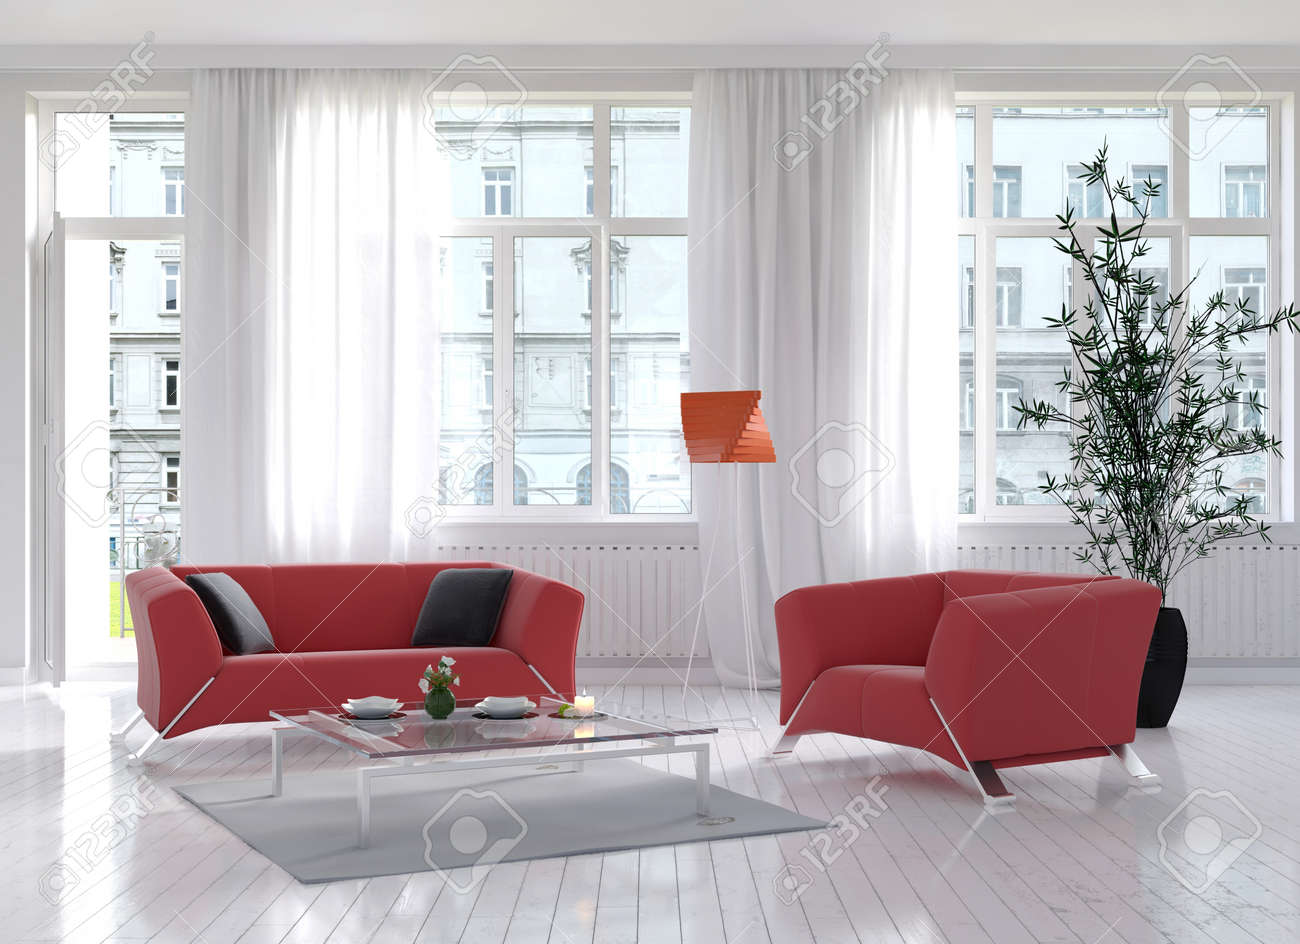 Sunny Light Living Room Interior With Red Couch And Floor Lamp Stock ...